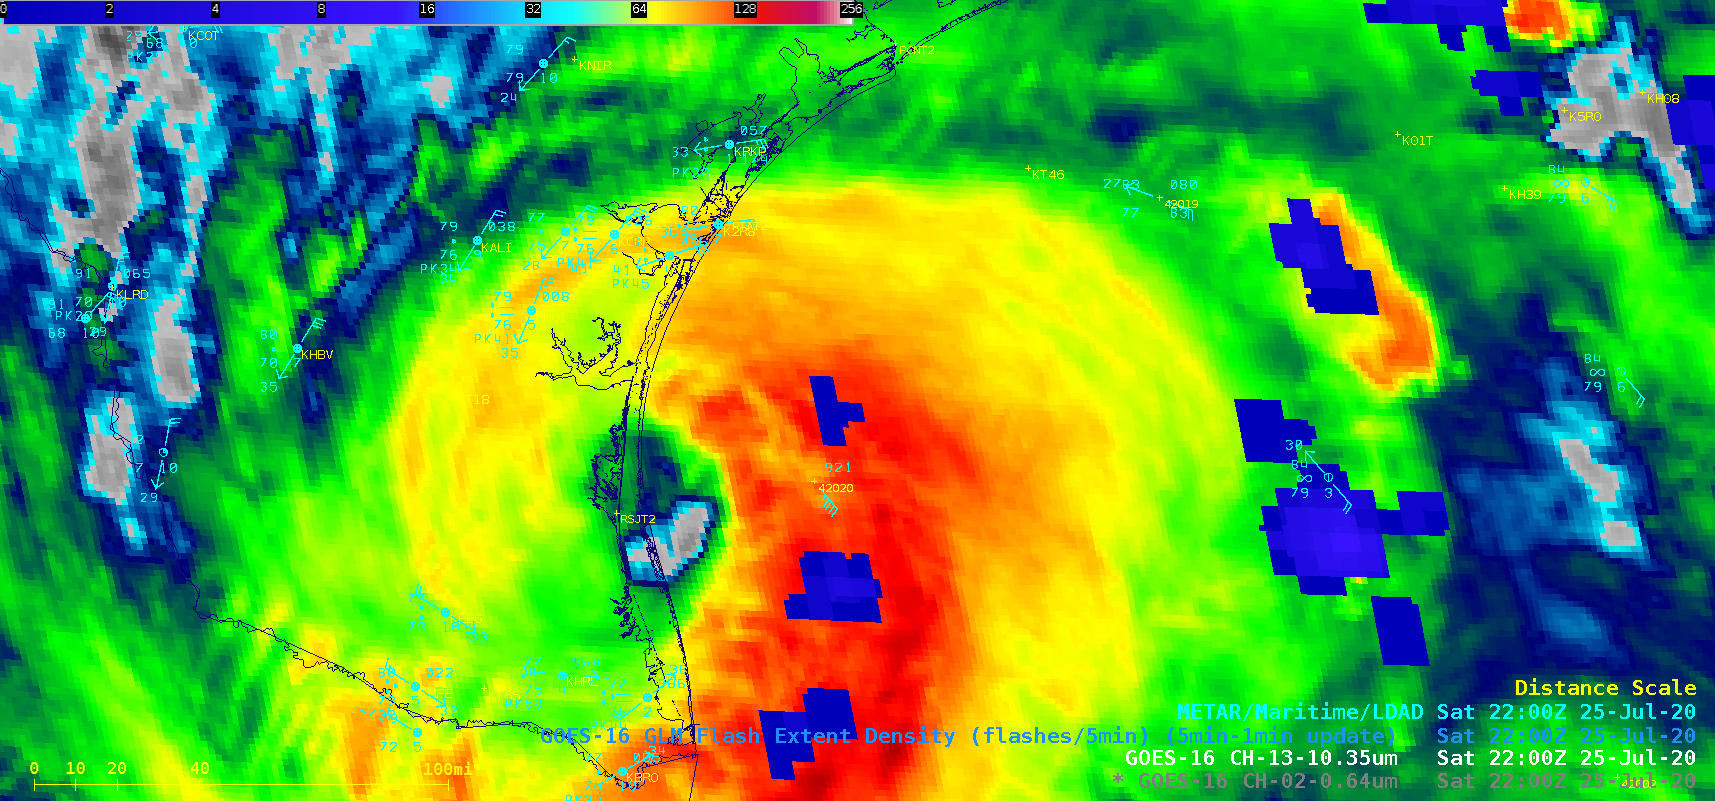 "GOES-16 ""Clean"" Infrared Window (10.35 µm) images, with an overlay of GLM Flash Extent Density [click to play animation 